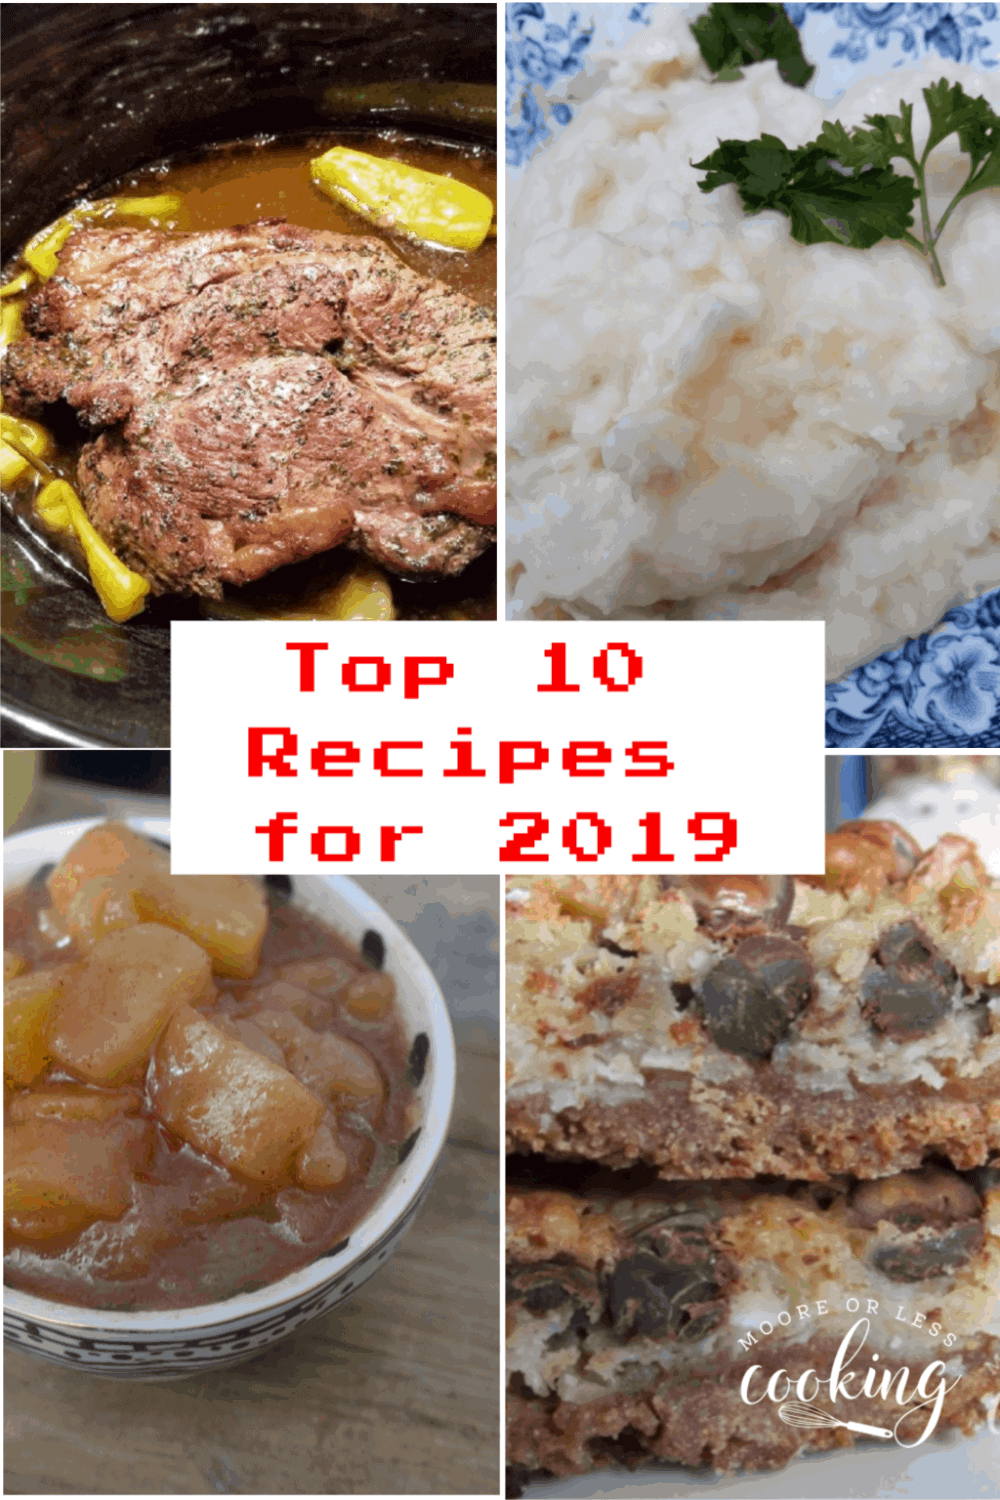 Top TEN Recipes for 2019 for Mooreorlesscooking.com #Bestrecipes #toptenrecipes #mooreorlesscooking #cooking #baking #bestofthebest via @Mooreorlesscook